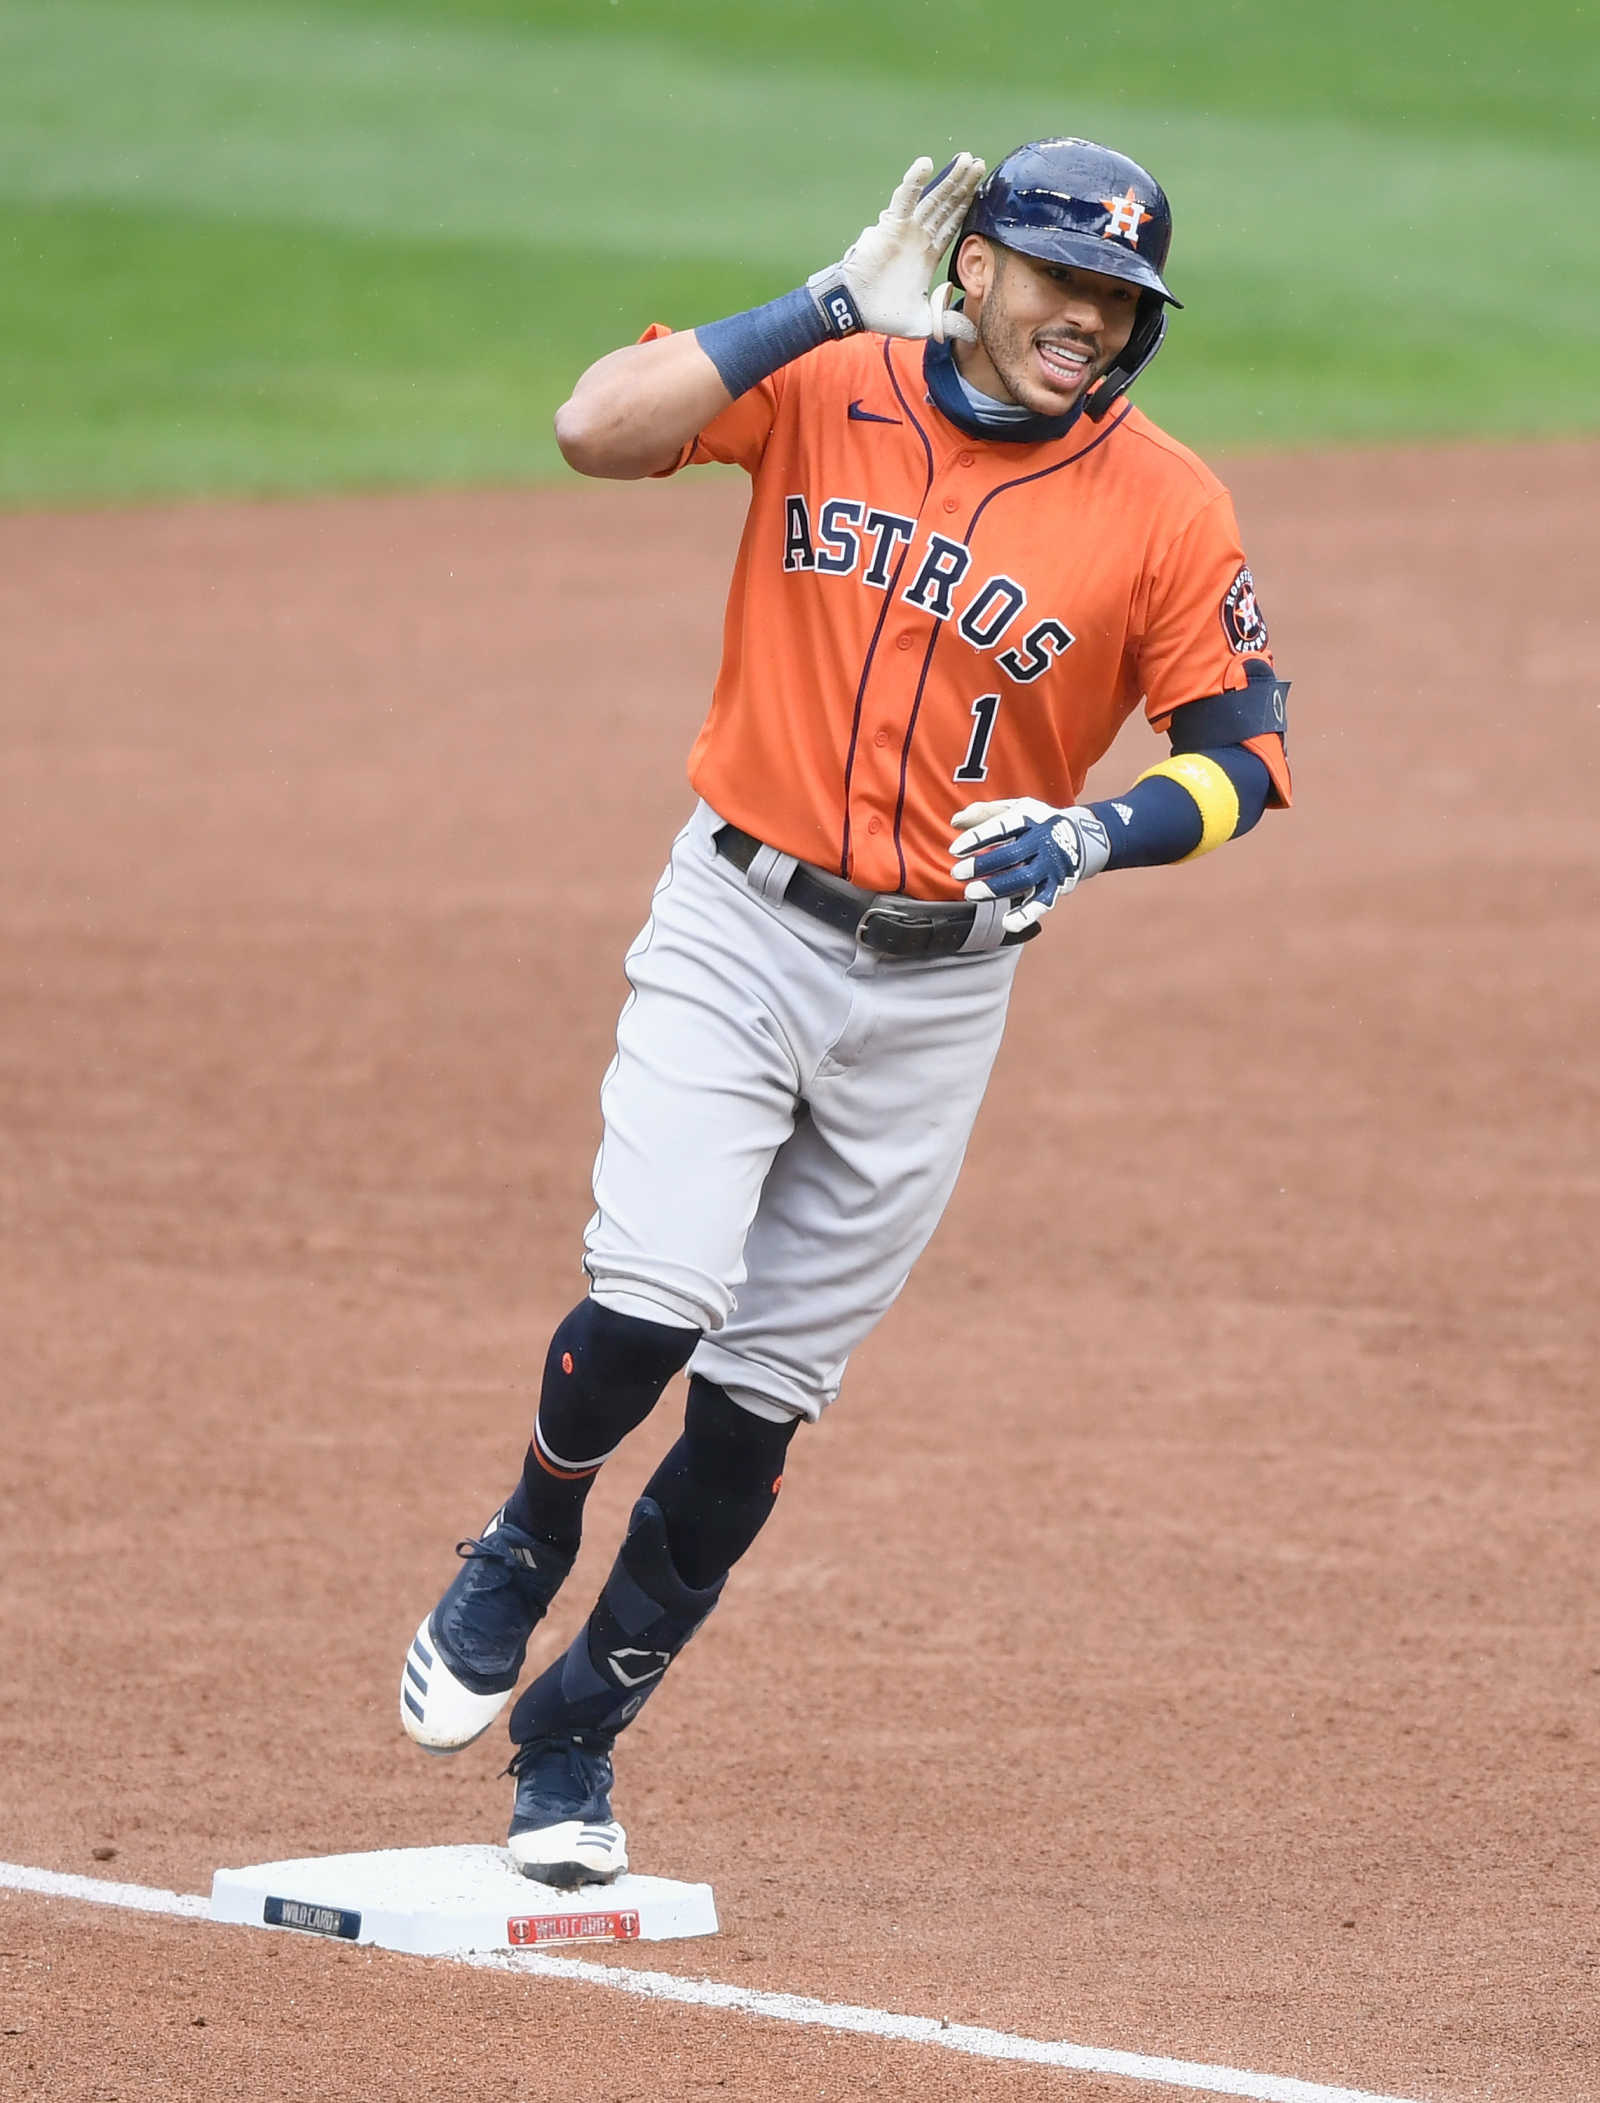 Houston Astros: Well Carlos Correa, I have a message for you too